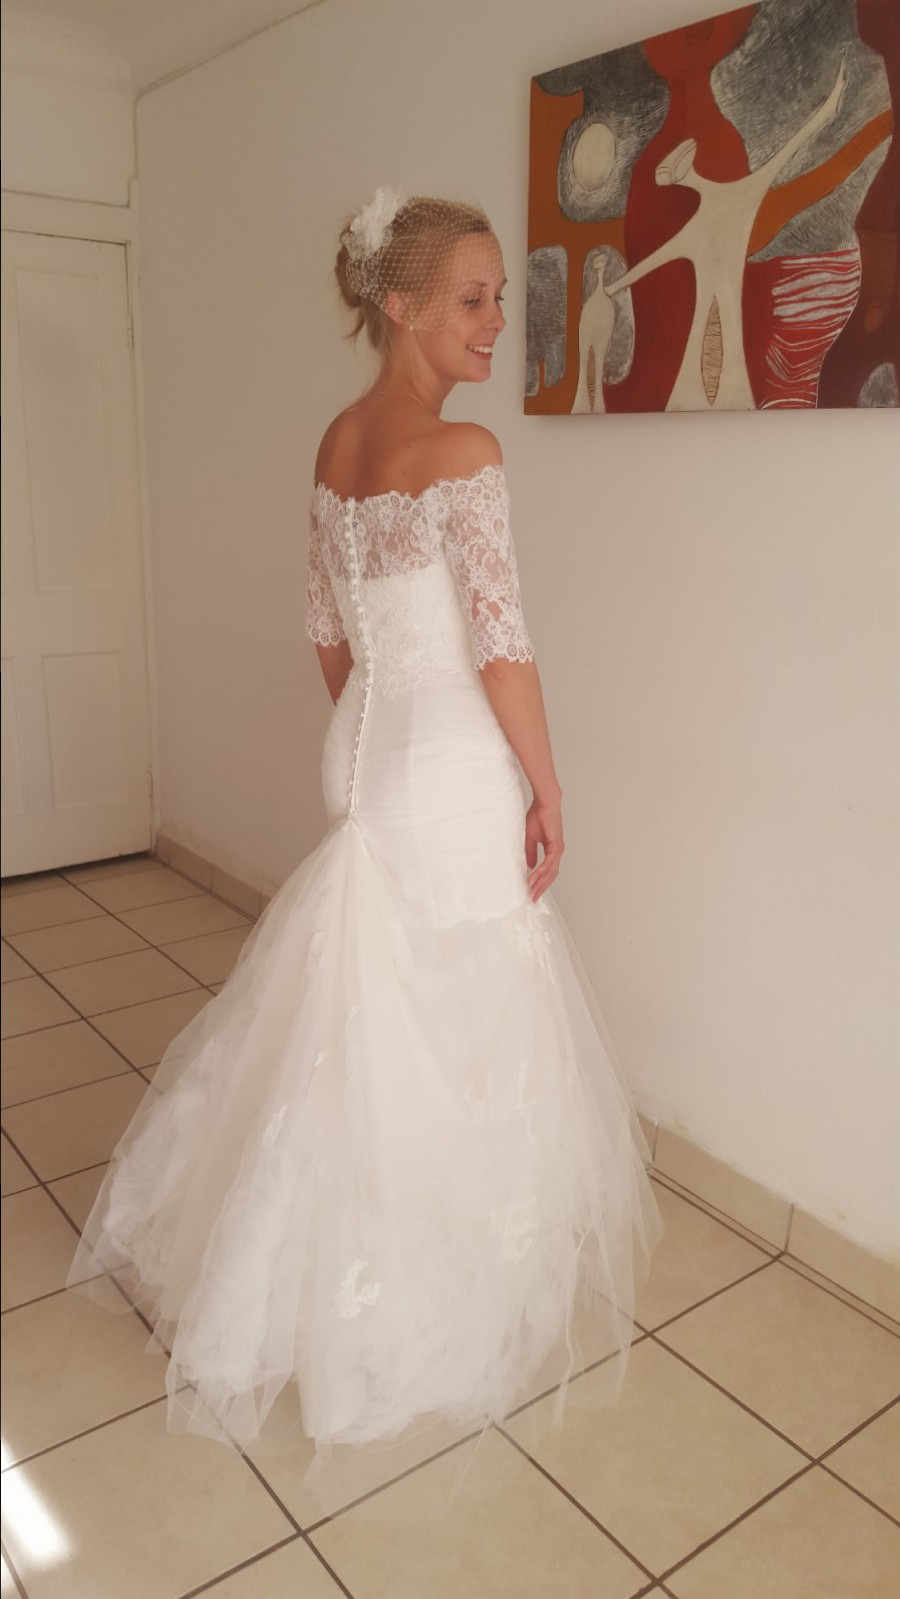 Bridal Gowns Vanderbijlpark : Venus wedding dress on sale off